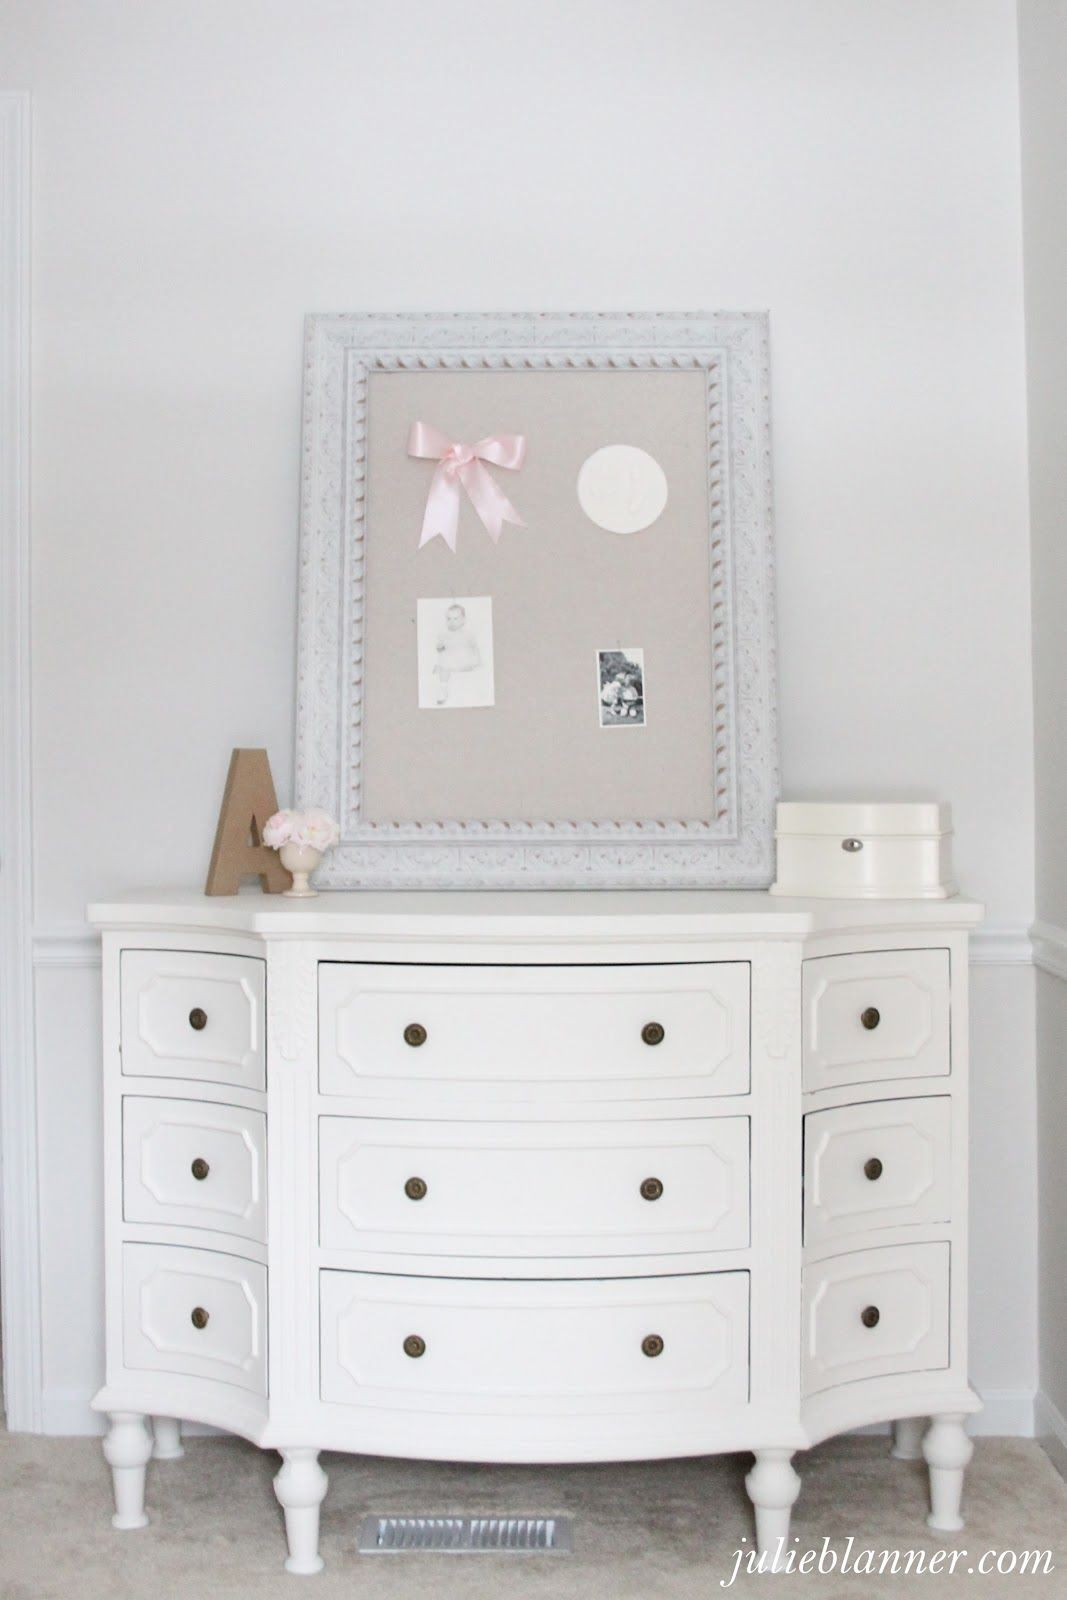 Coordinately Yours, by Julie Blanner   Entertaining & Design Blog that Celebrates Life